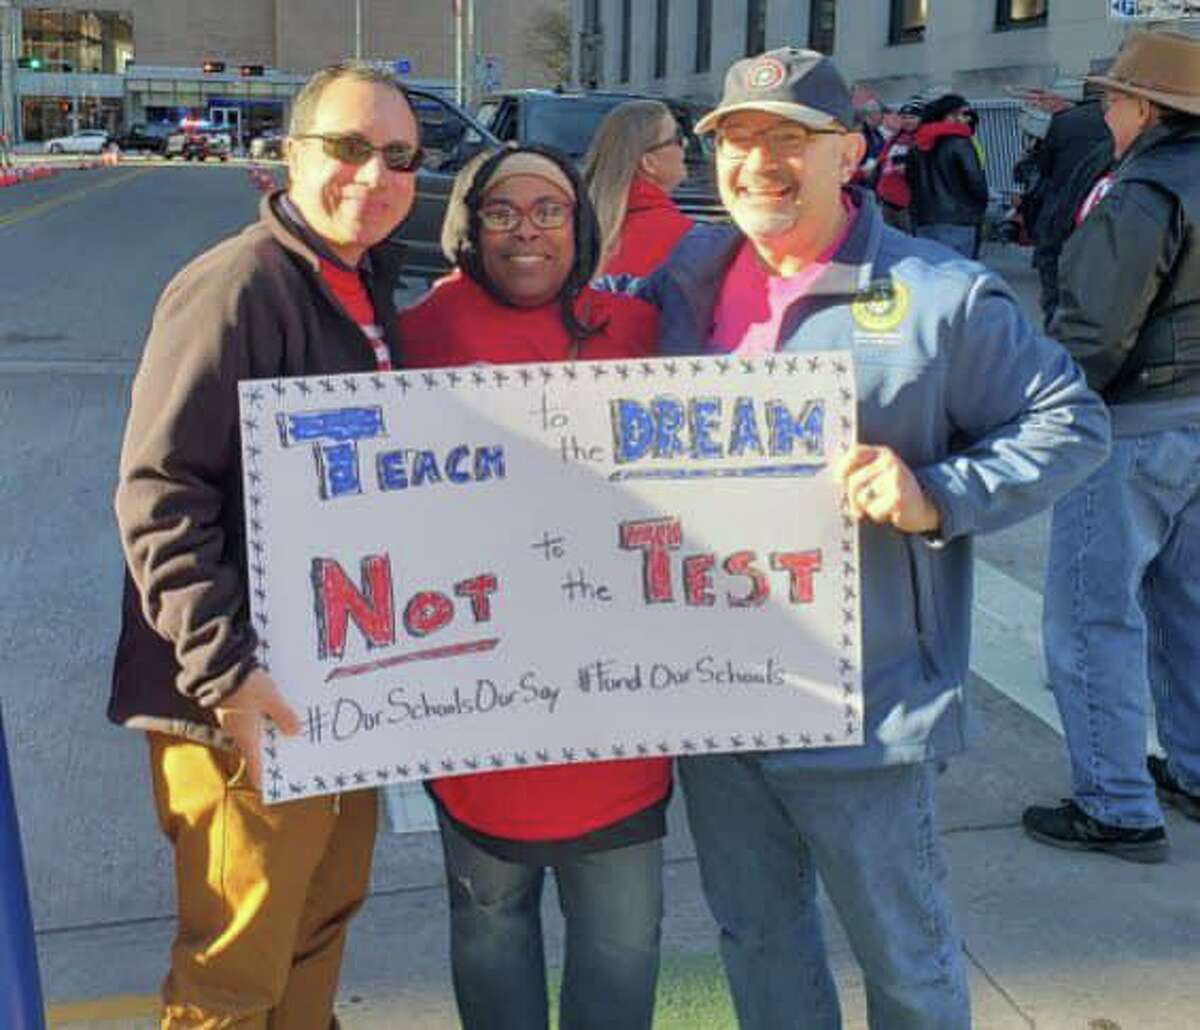 Jon Rosenthal, representative for Texas House District 135, is an advocate for teacher unions and rights for educators.